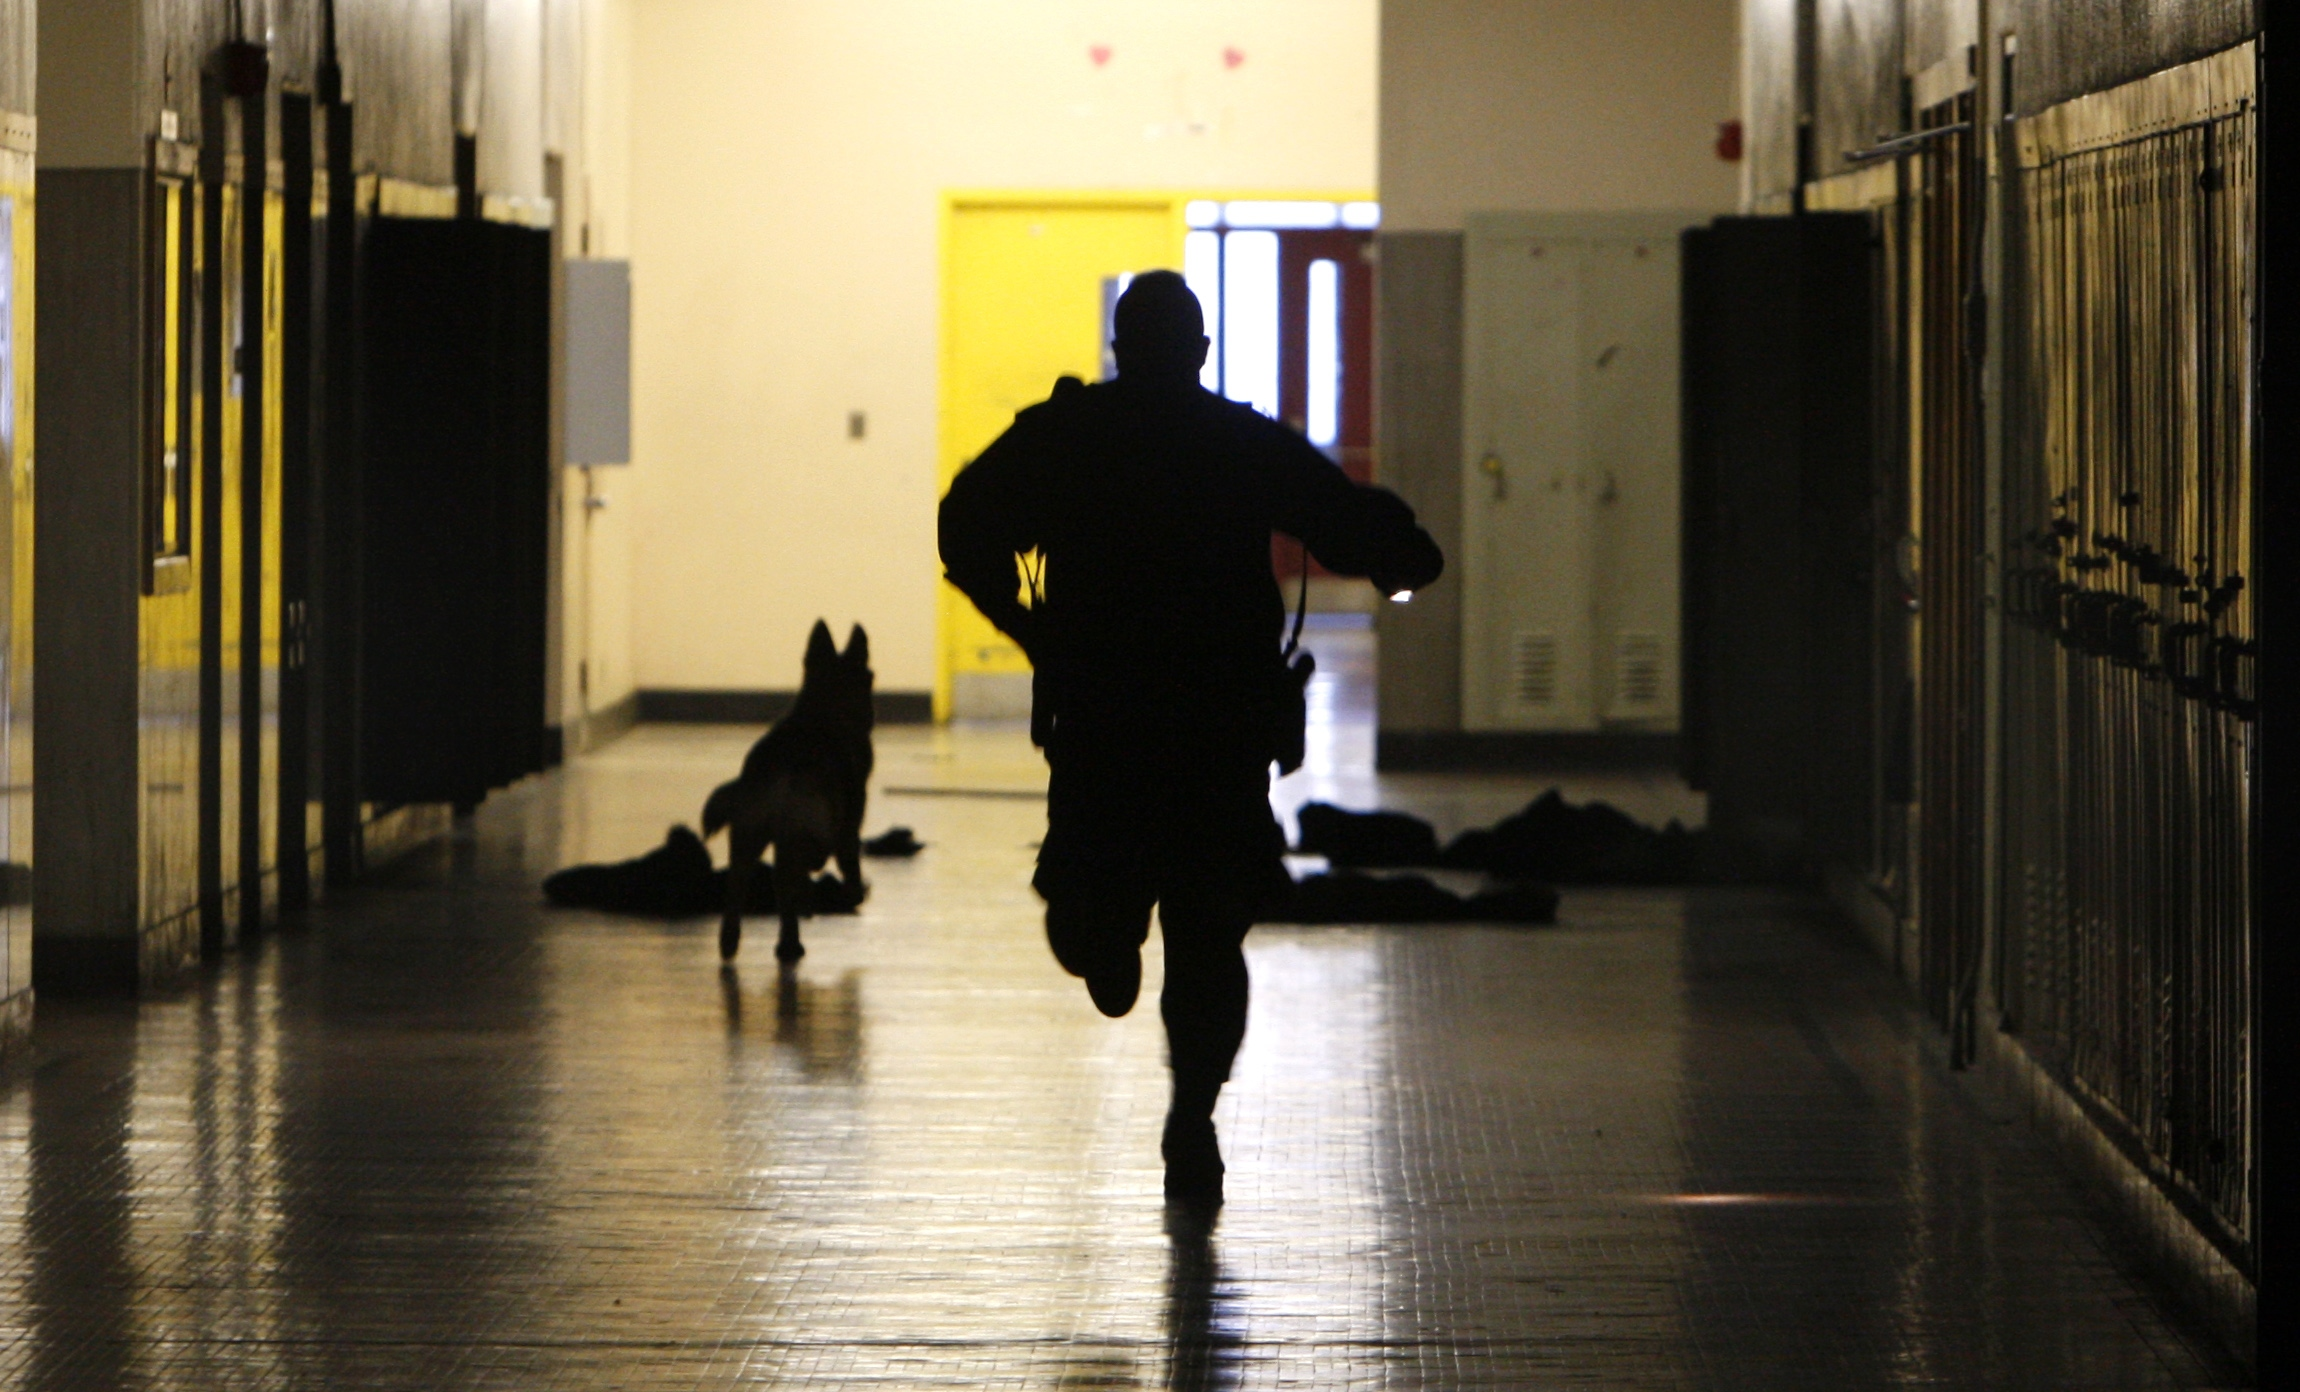 School Crime And Violence On The Rise For Students And